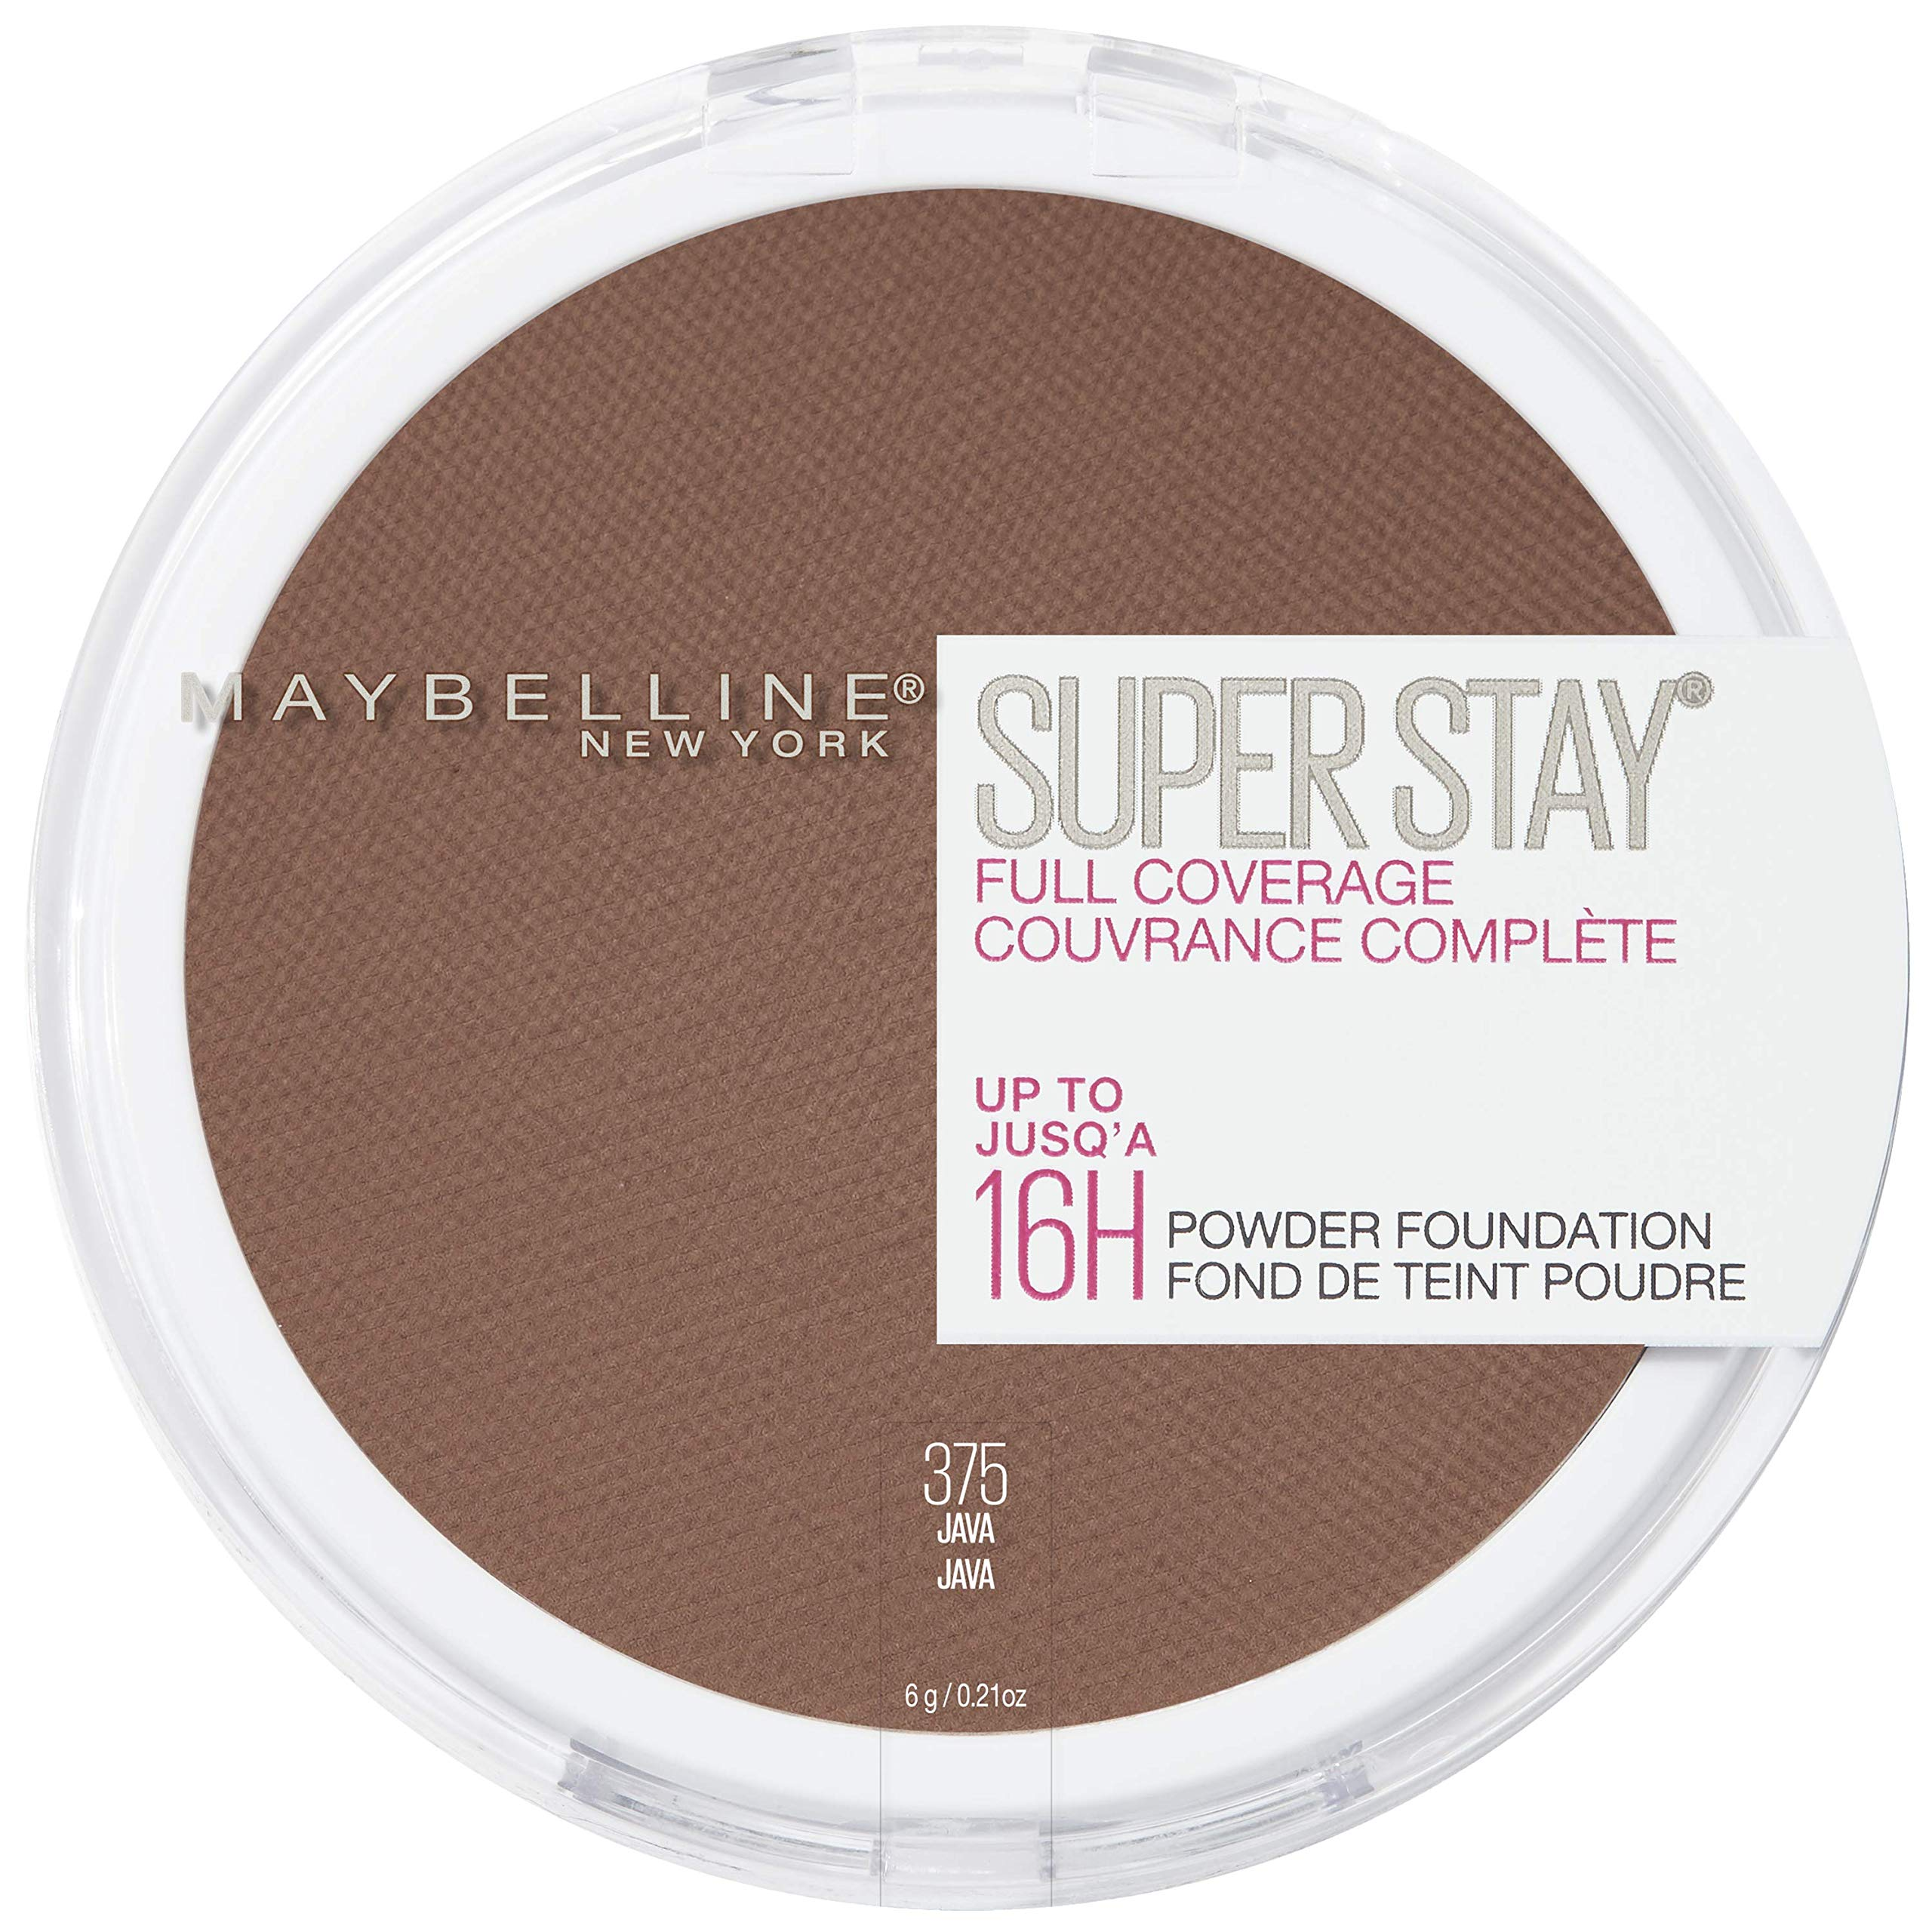 Maybelline New York Super Stay Full Coverage Powder Foundation Makeup, 0.21 Ounce